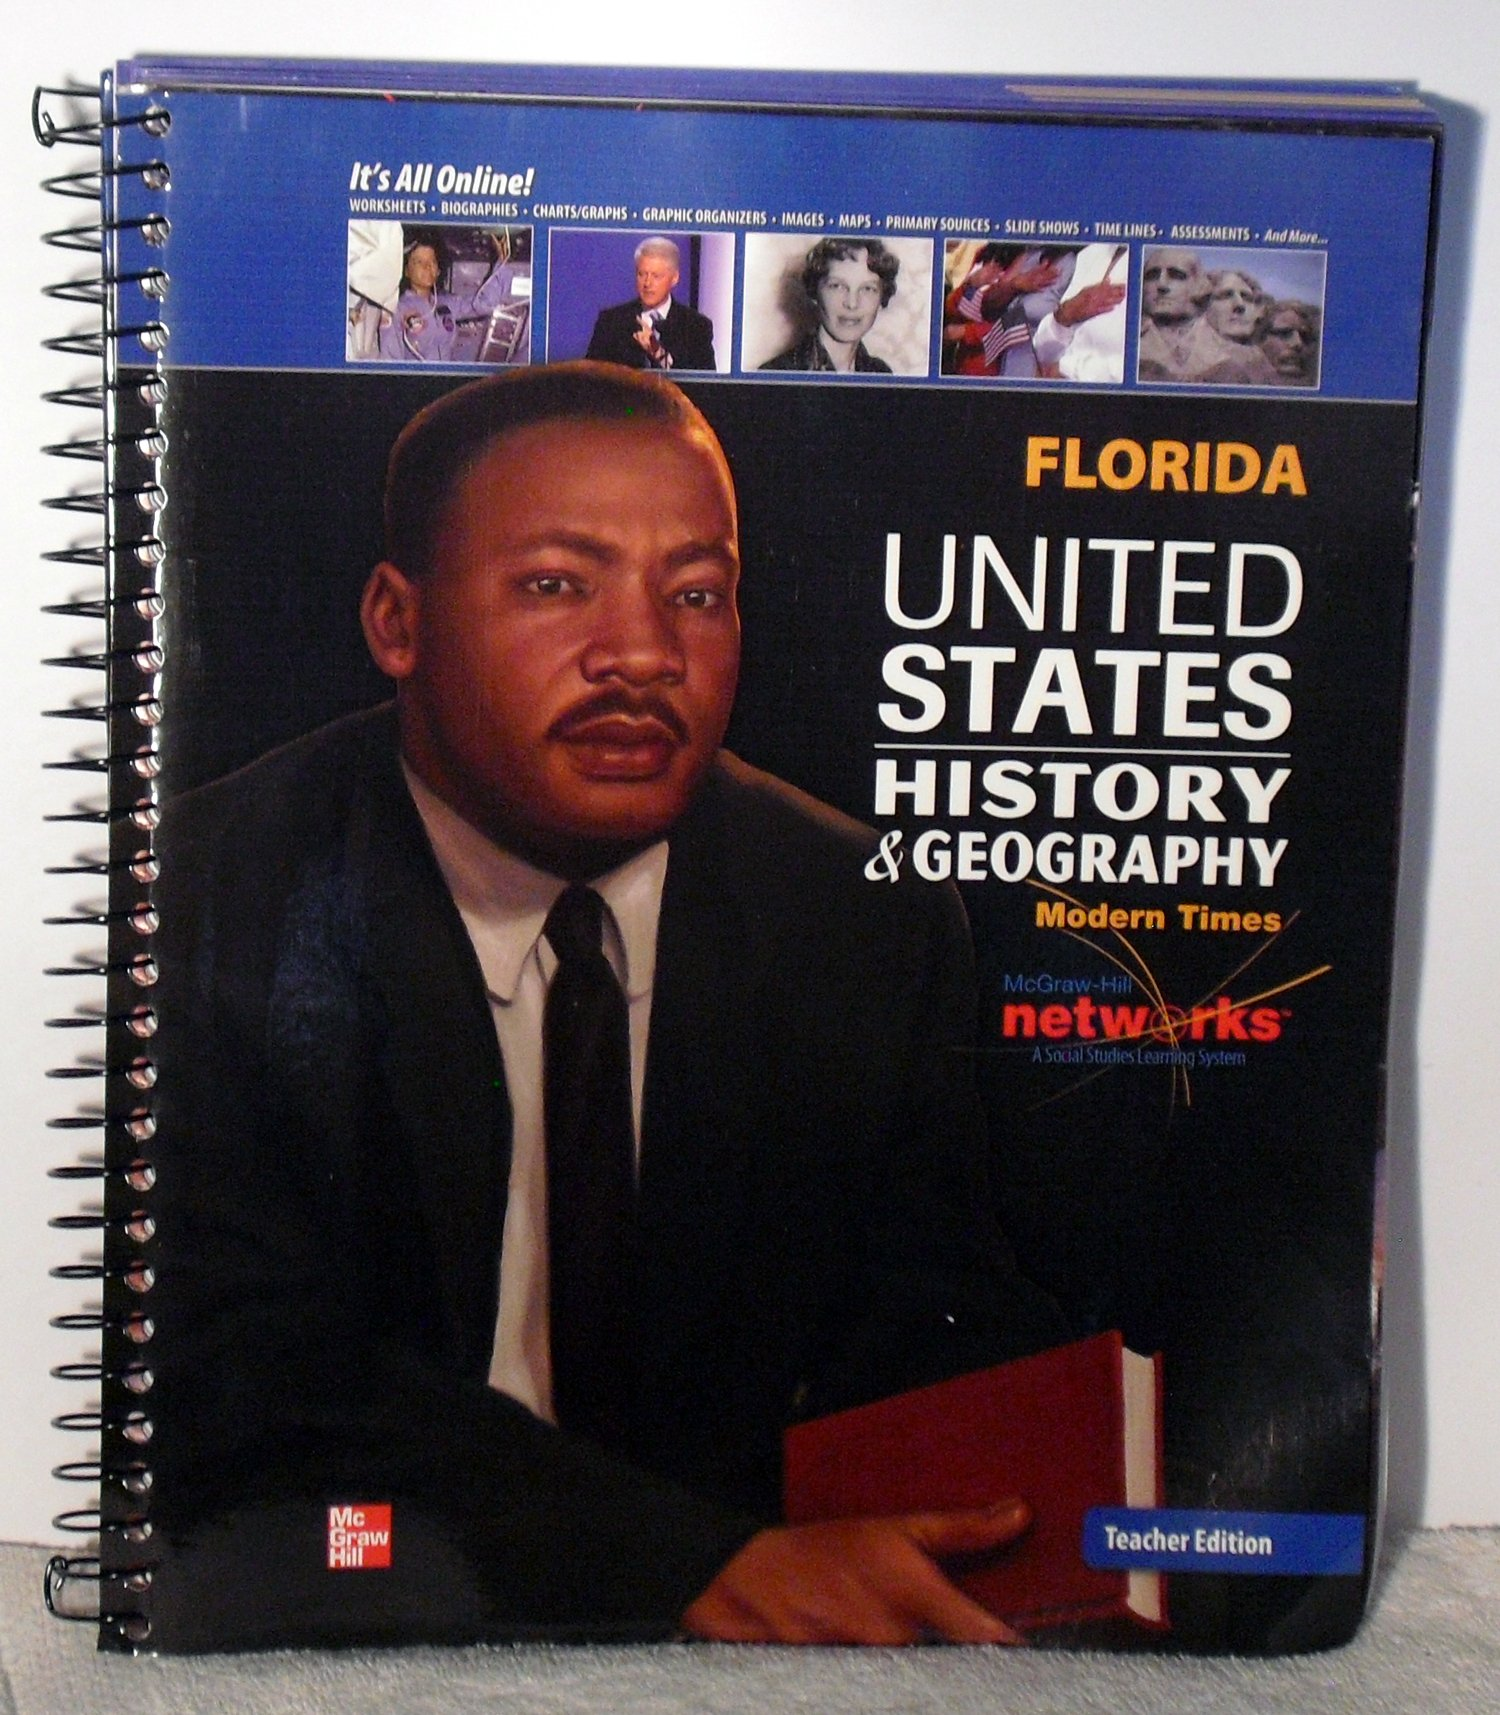 United States History & Geography: Modern Times, Florida Teacher Edition:  Appleby et al.: 9780076609444: Amazon.com: Books